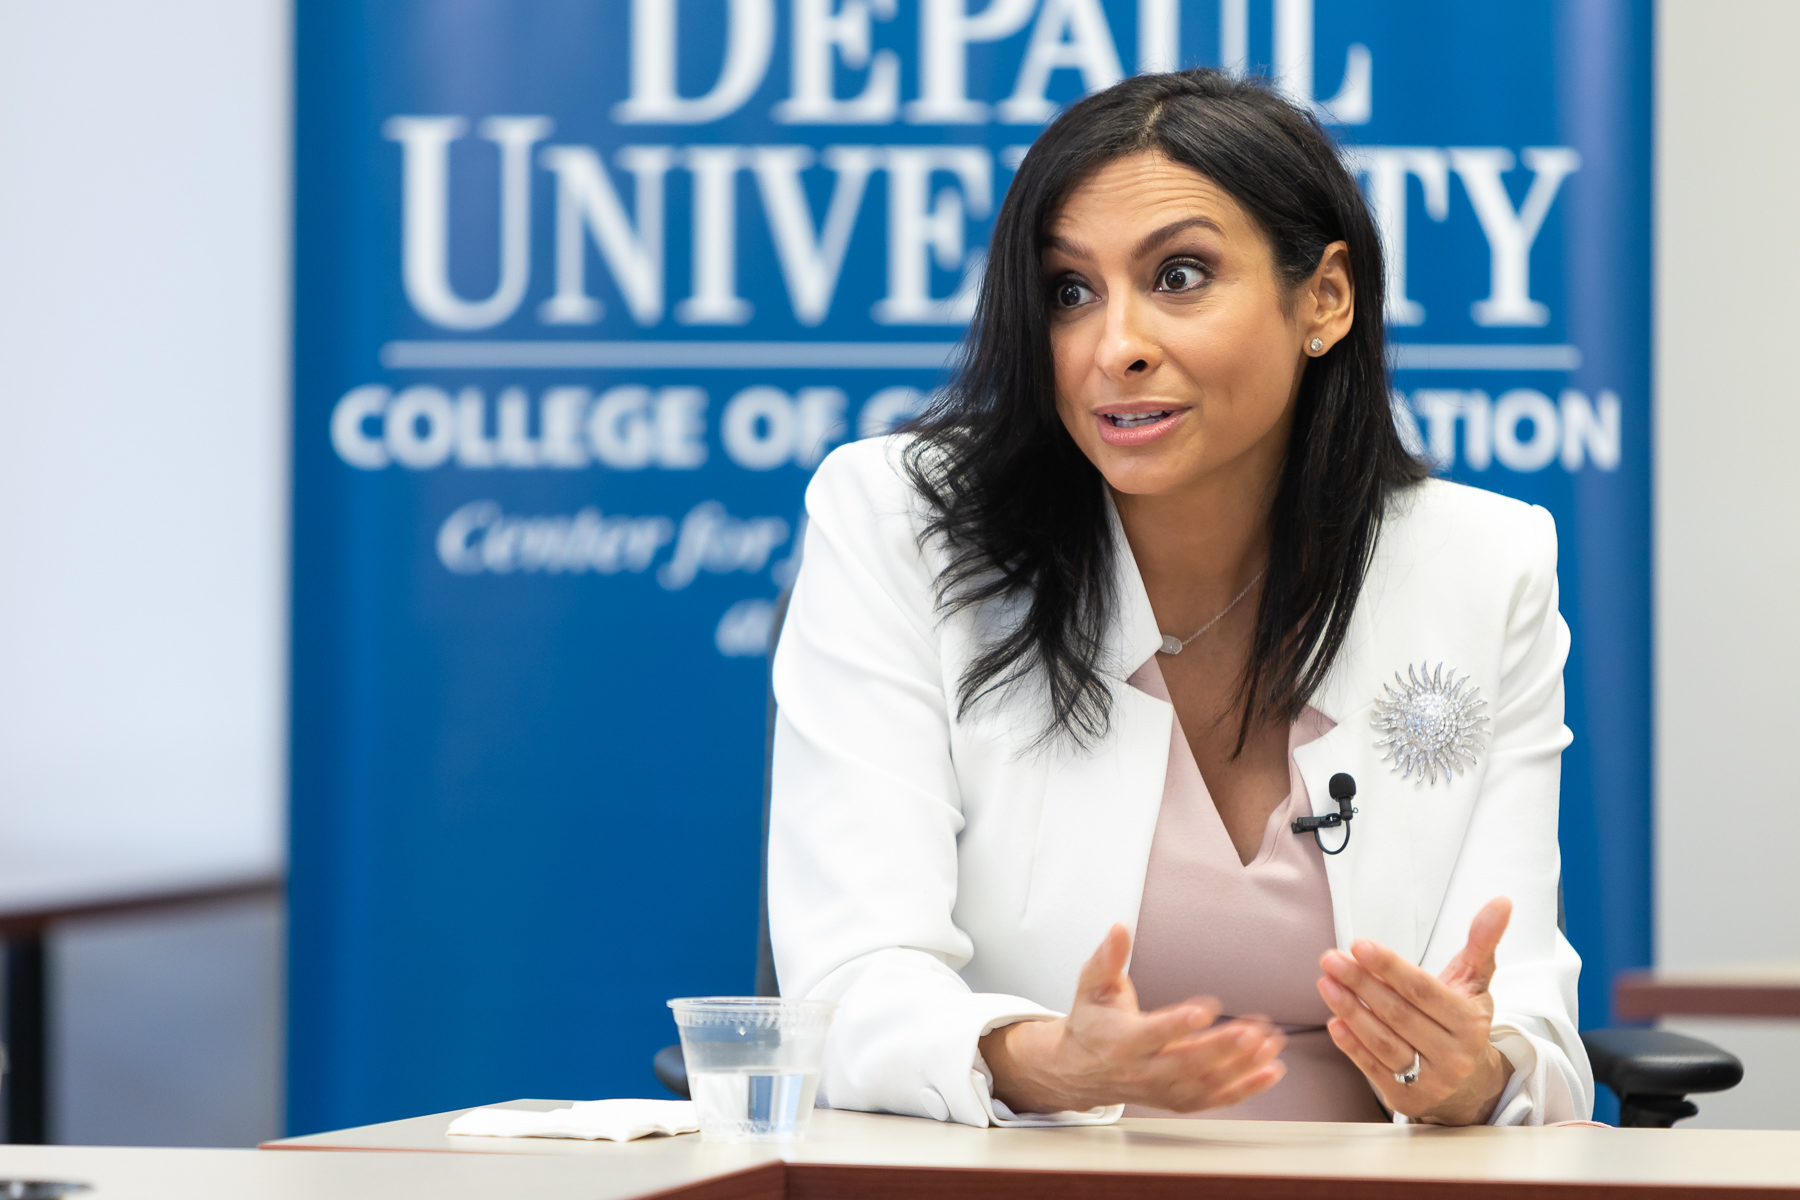 Lourdes Duarte, an investigative reporter and co-anchor for WGN News and a DePaul alumna, shares her professional experience with College of Communication journalism students. (DePaul University/Jeff Carrion)